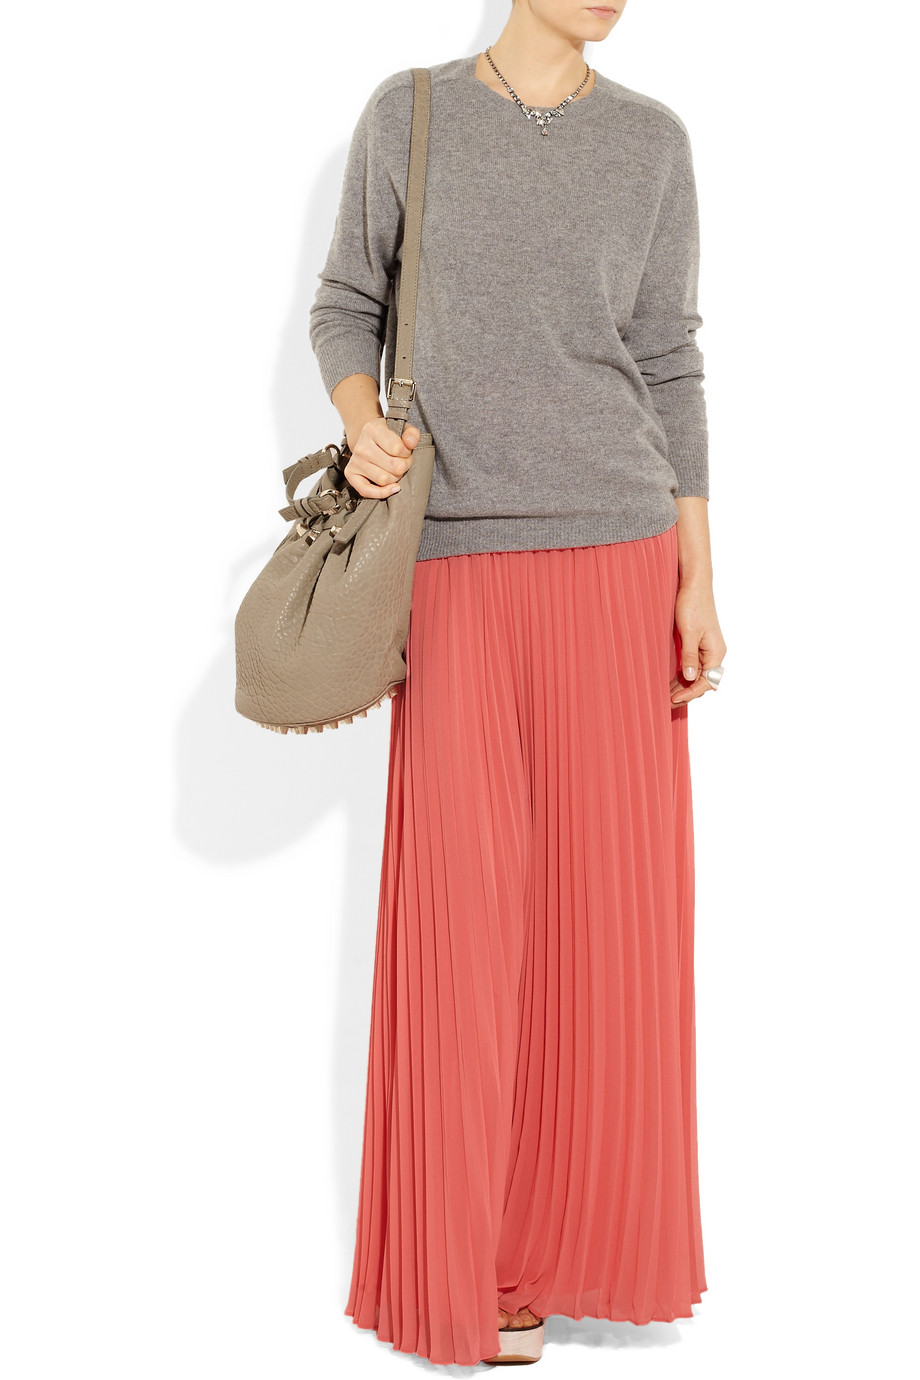 style maxi skirt styling